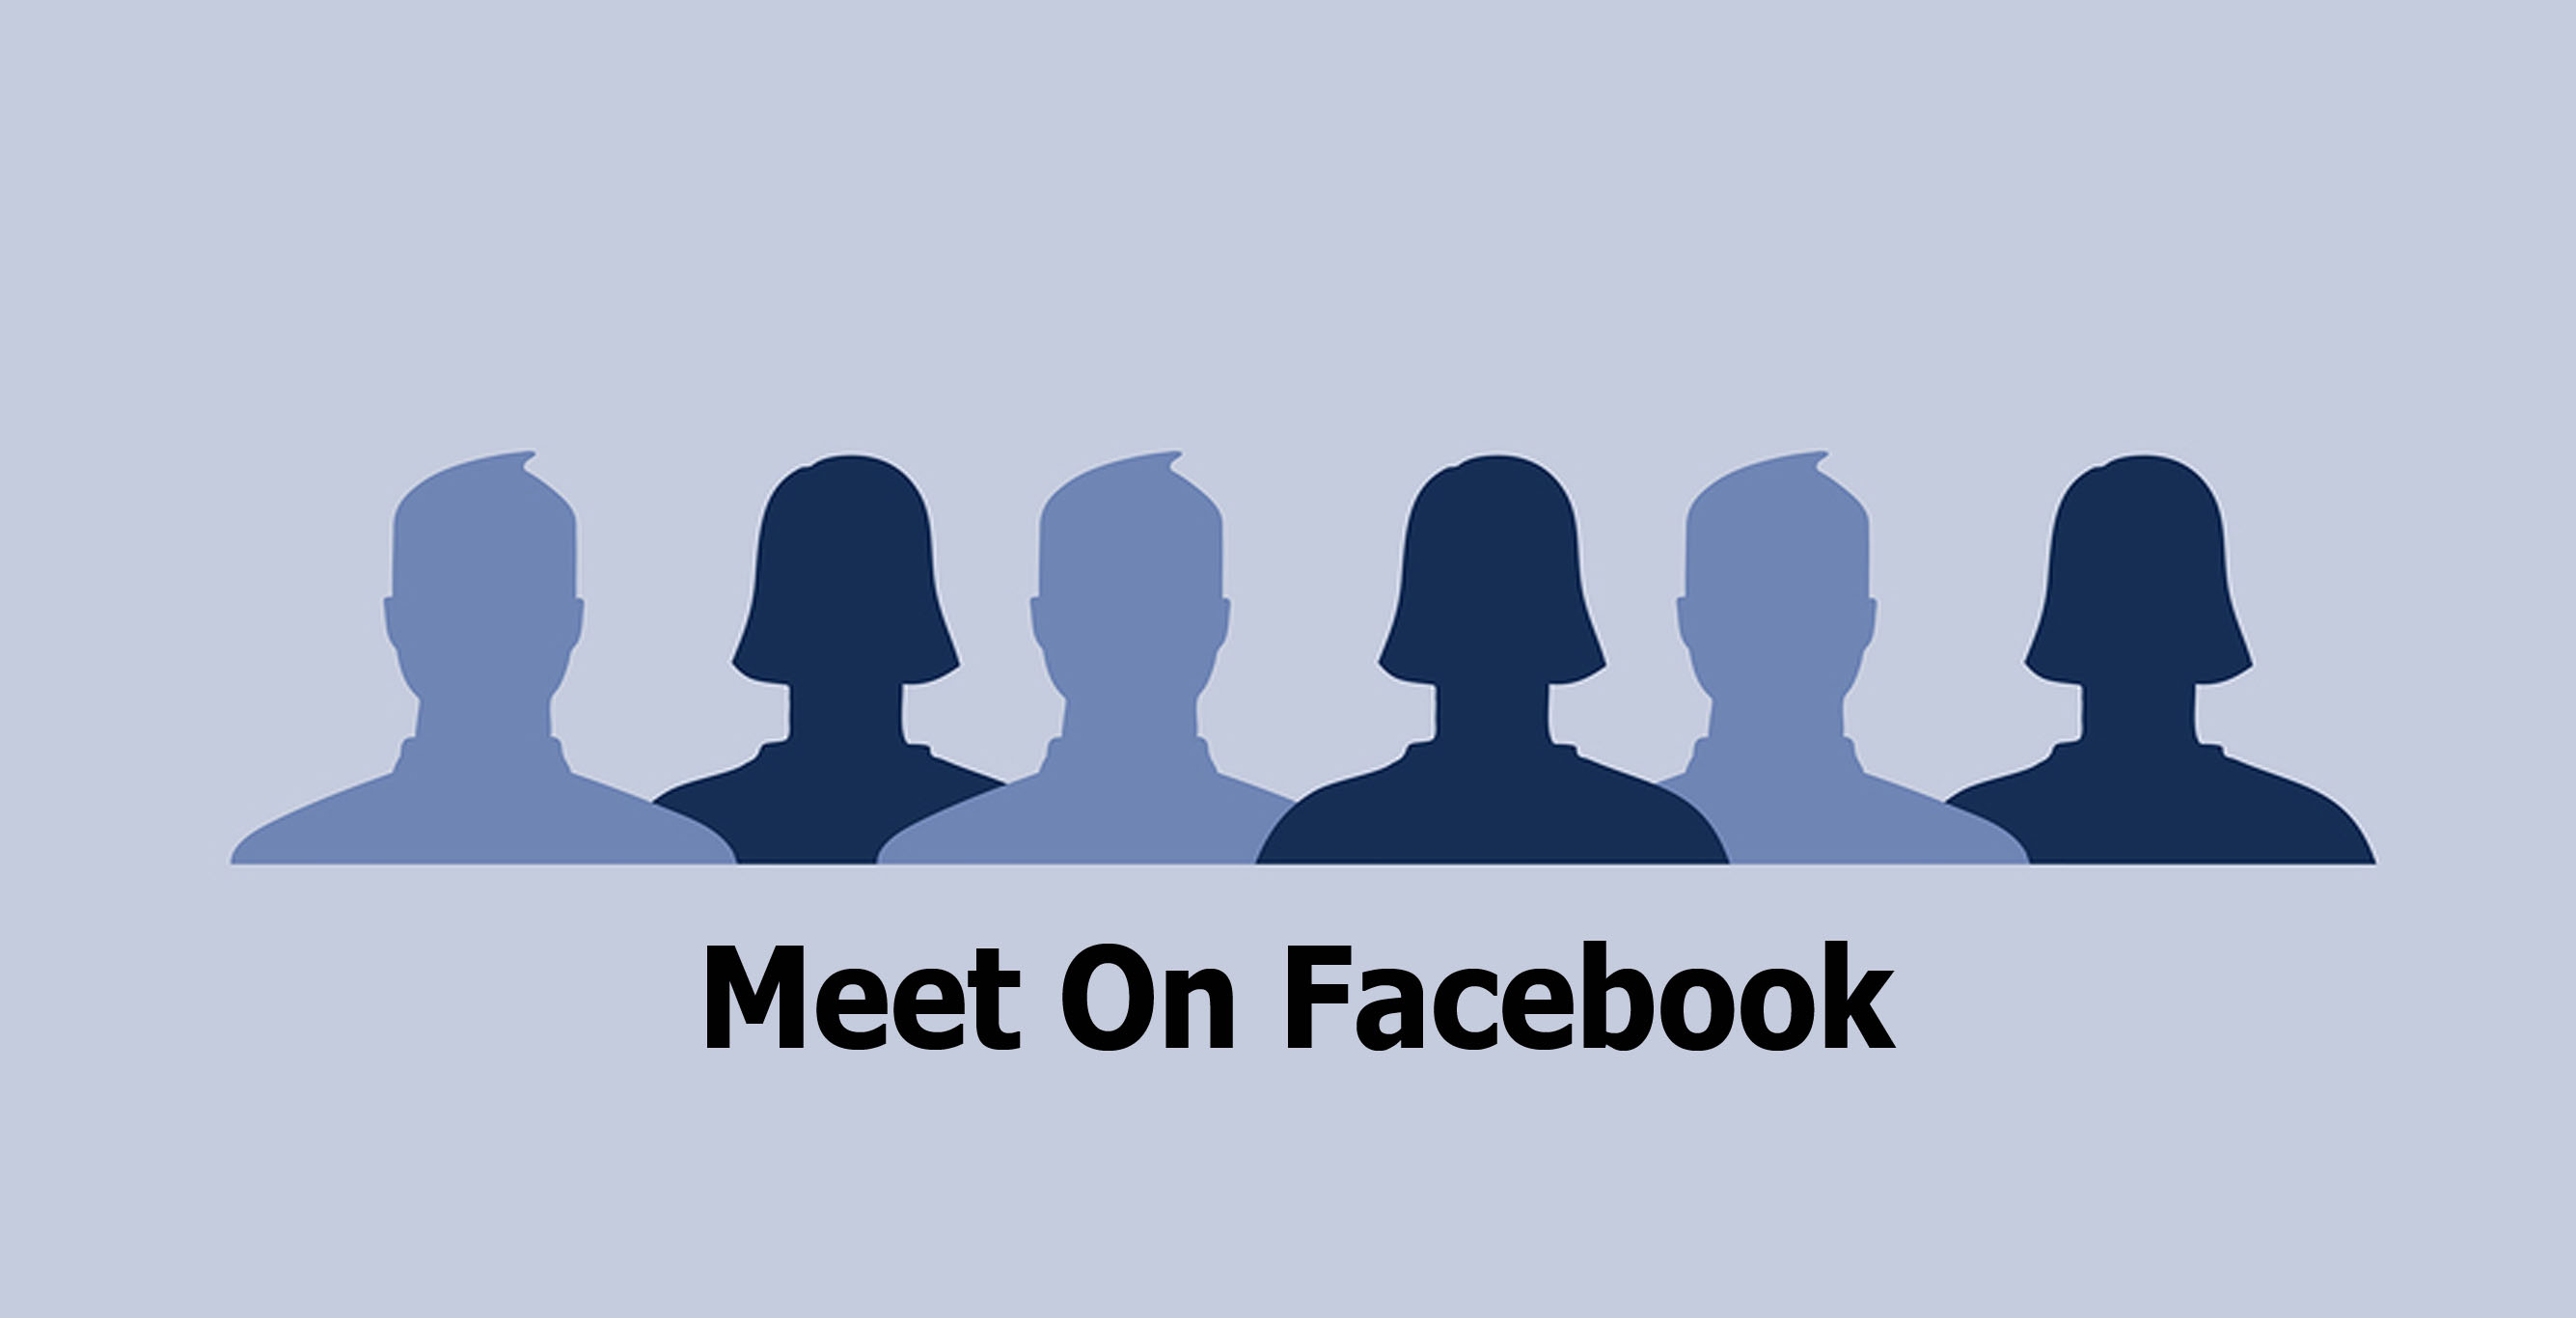 Meet On Facebook - The Dating Feature on Facebook